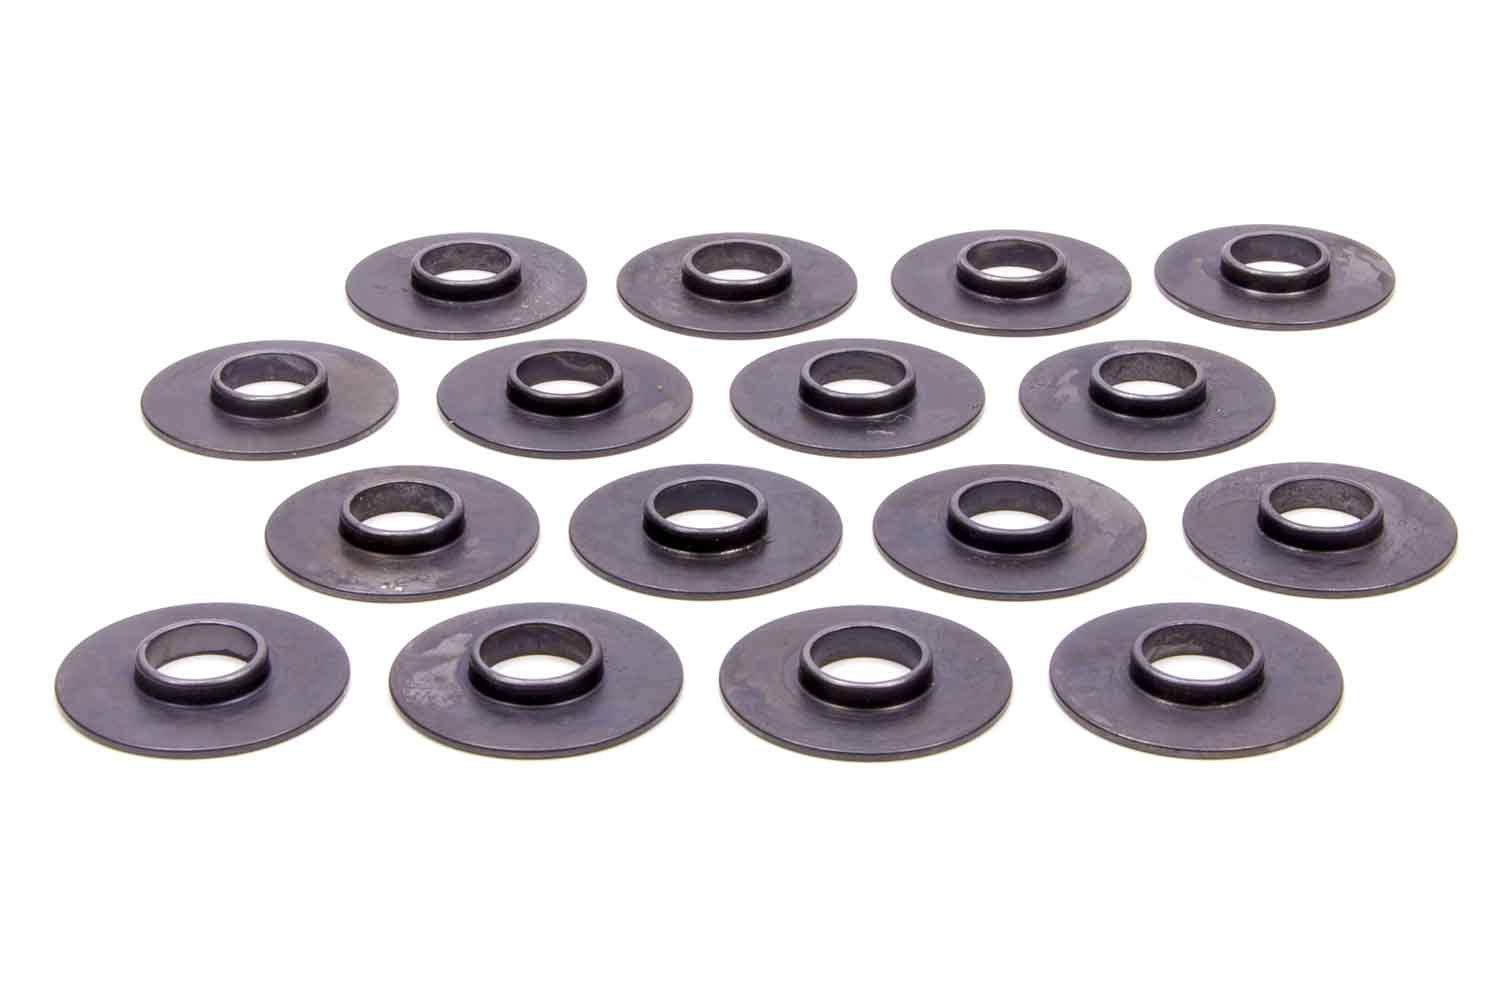 PAC Racing Springs PAC-S113 Valve Spring Locator, Inside, 0.060 in Thick, 1.450 in OD, 0.630 in ID, 0.980 in Spring ID, Chromoly, Set of 16